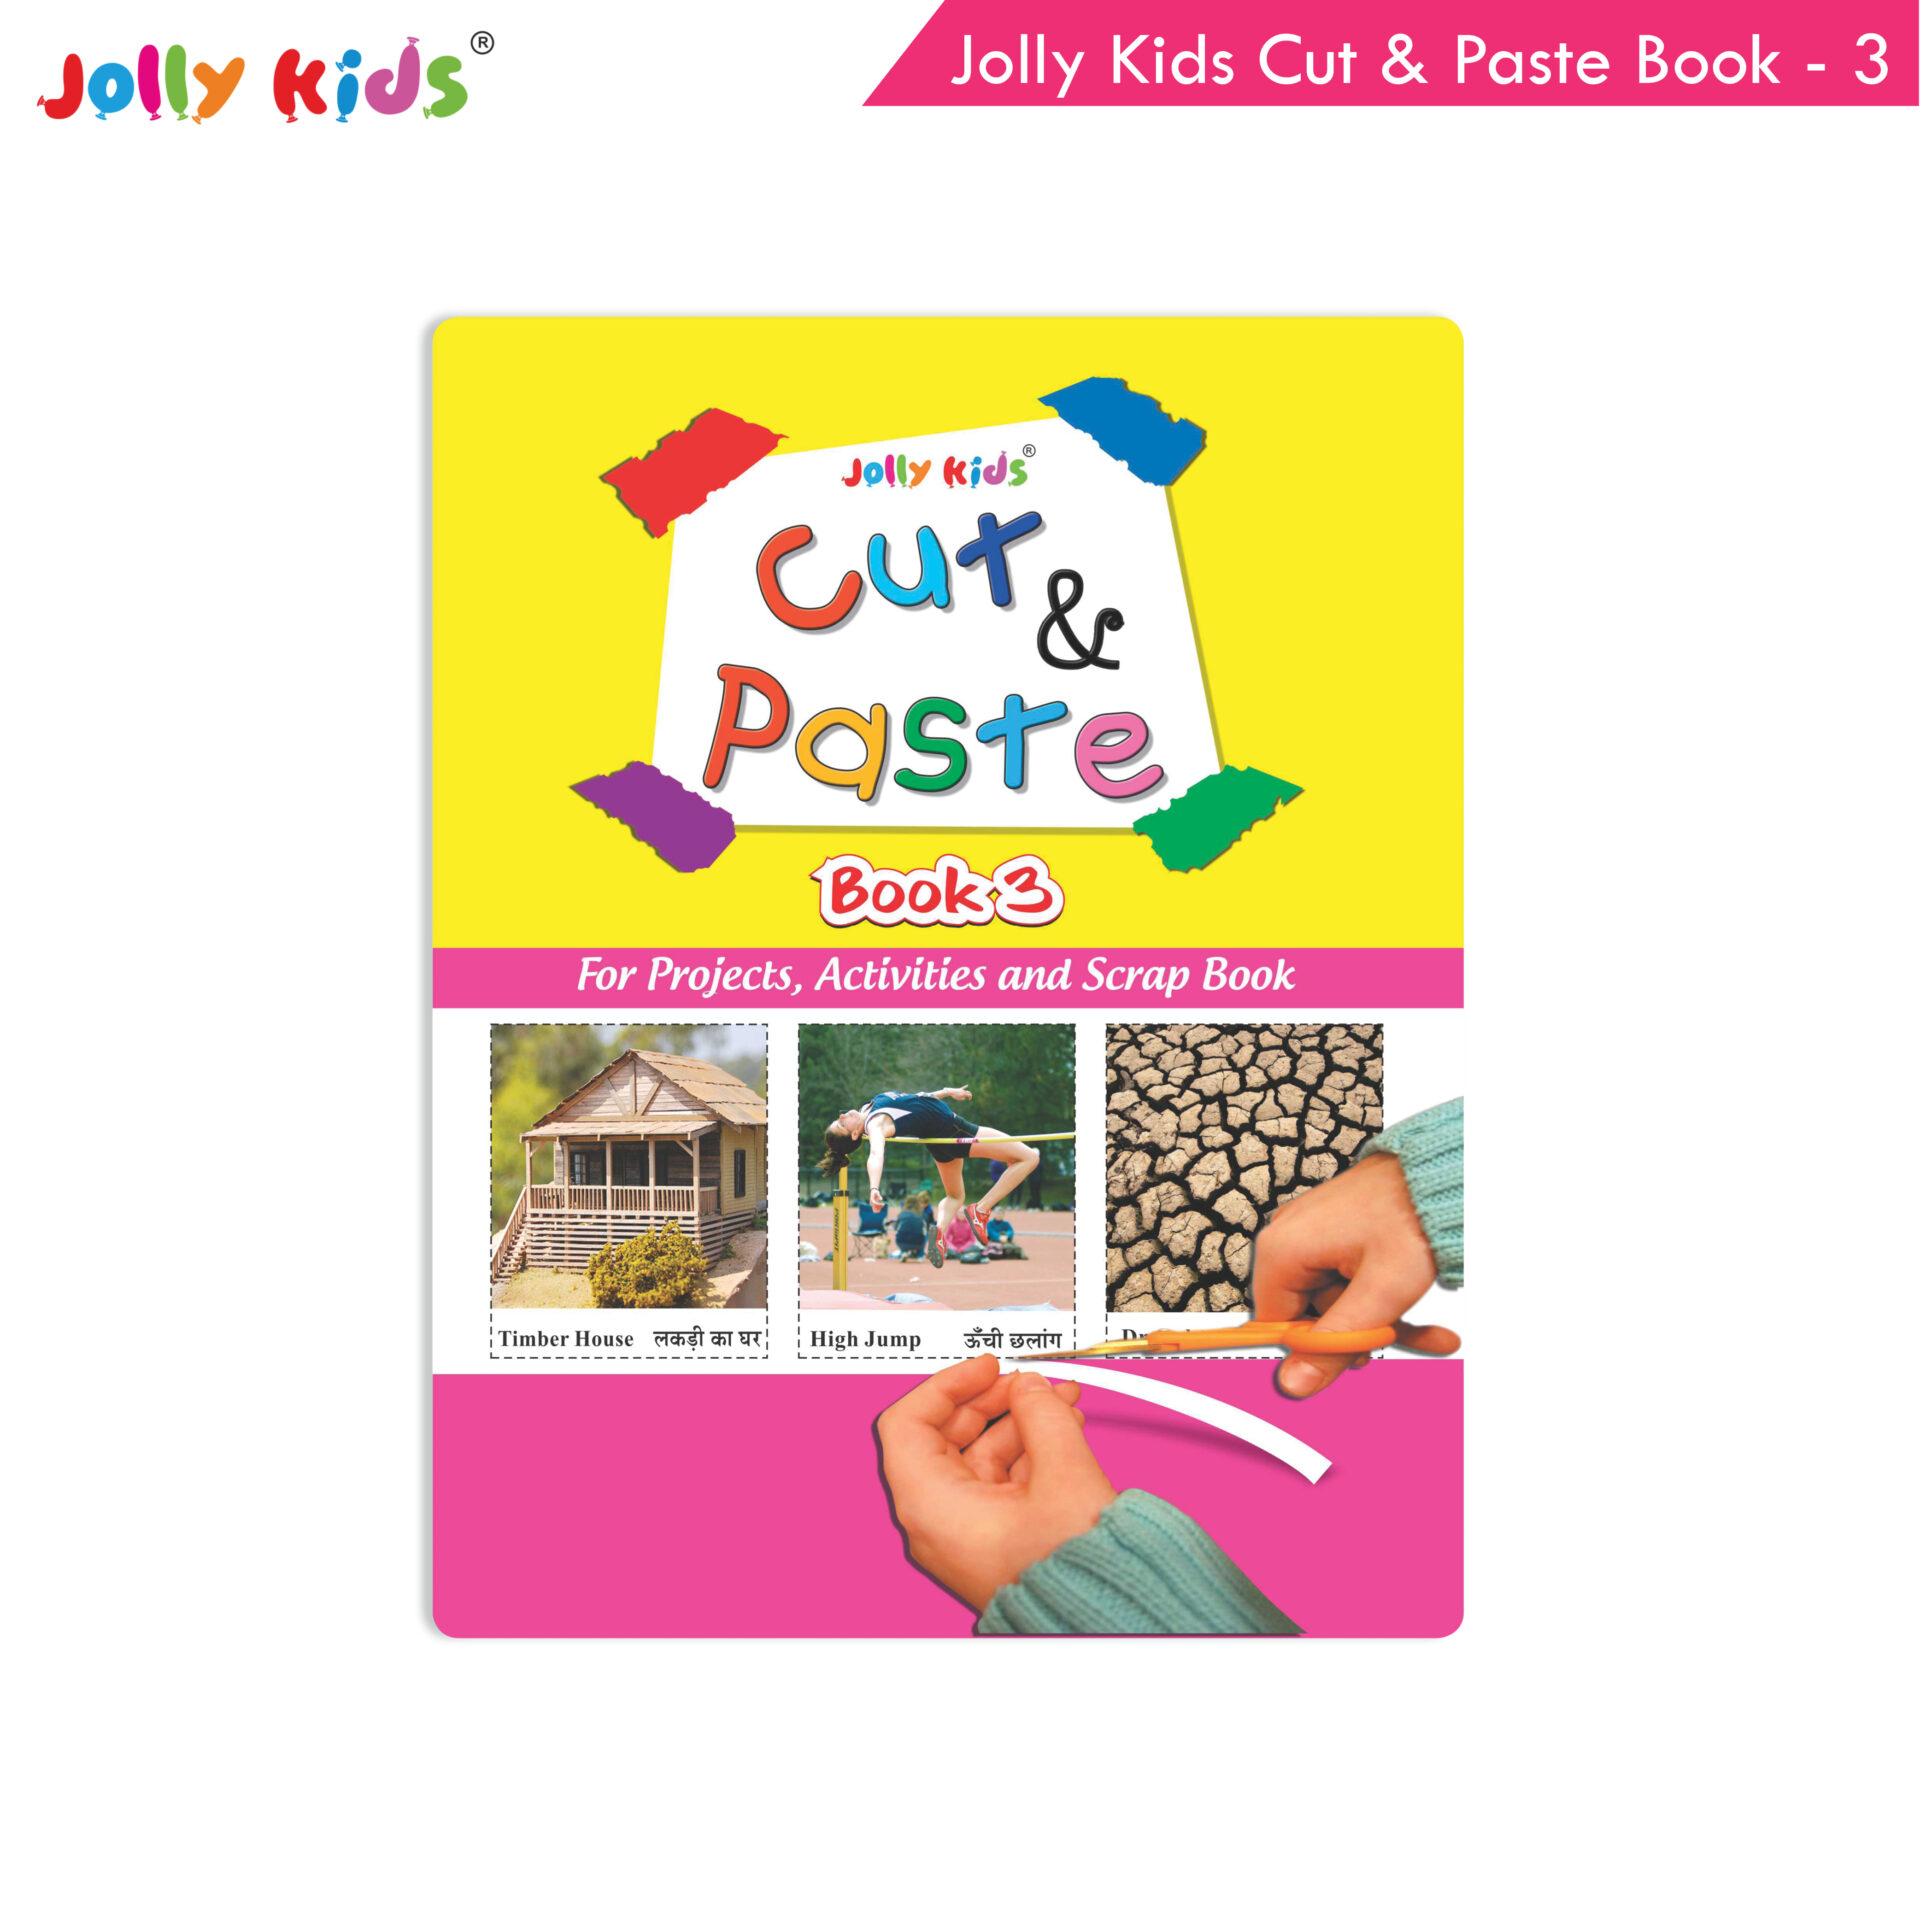 Jolly Kids Cut and Paste Book 3 1